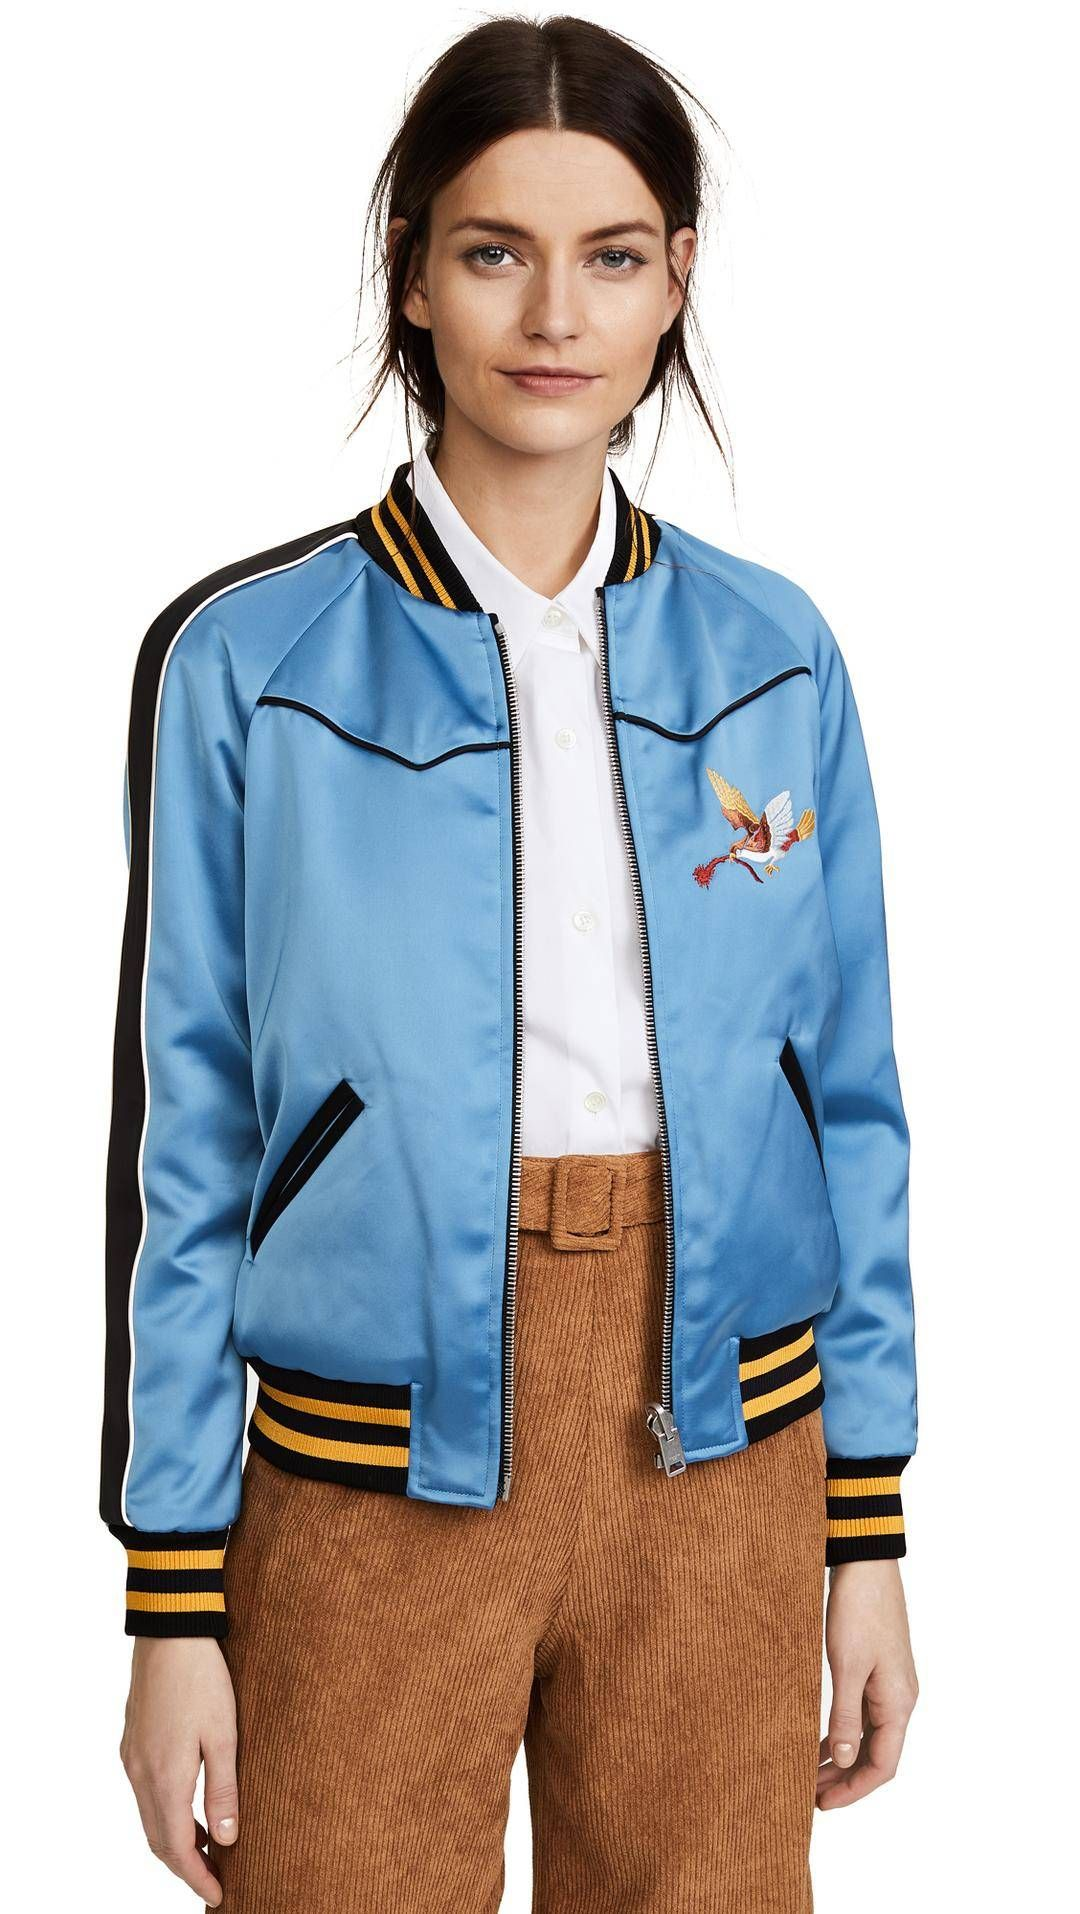 How It Girls Wear Bomber Jackets (and How You Should Too